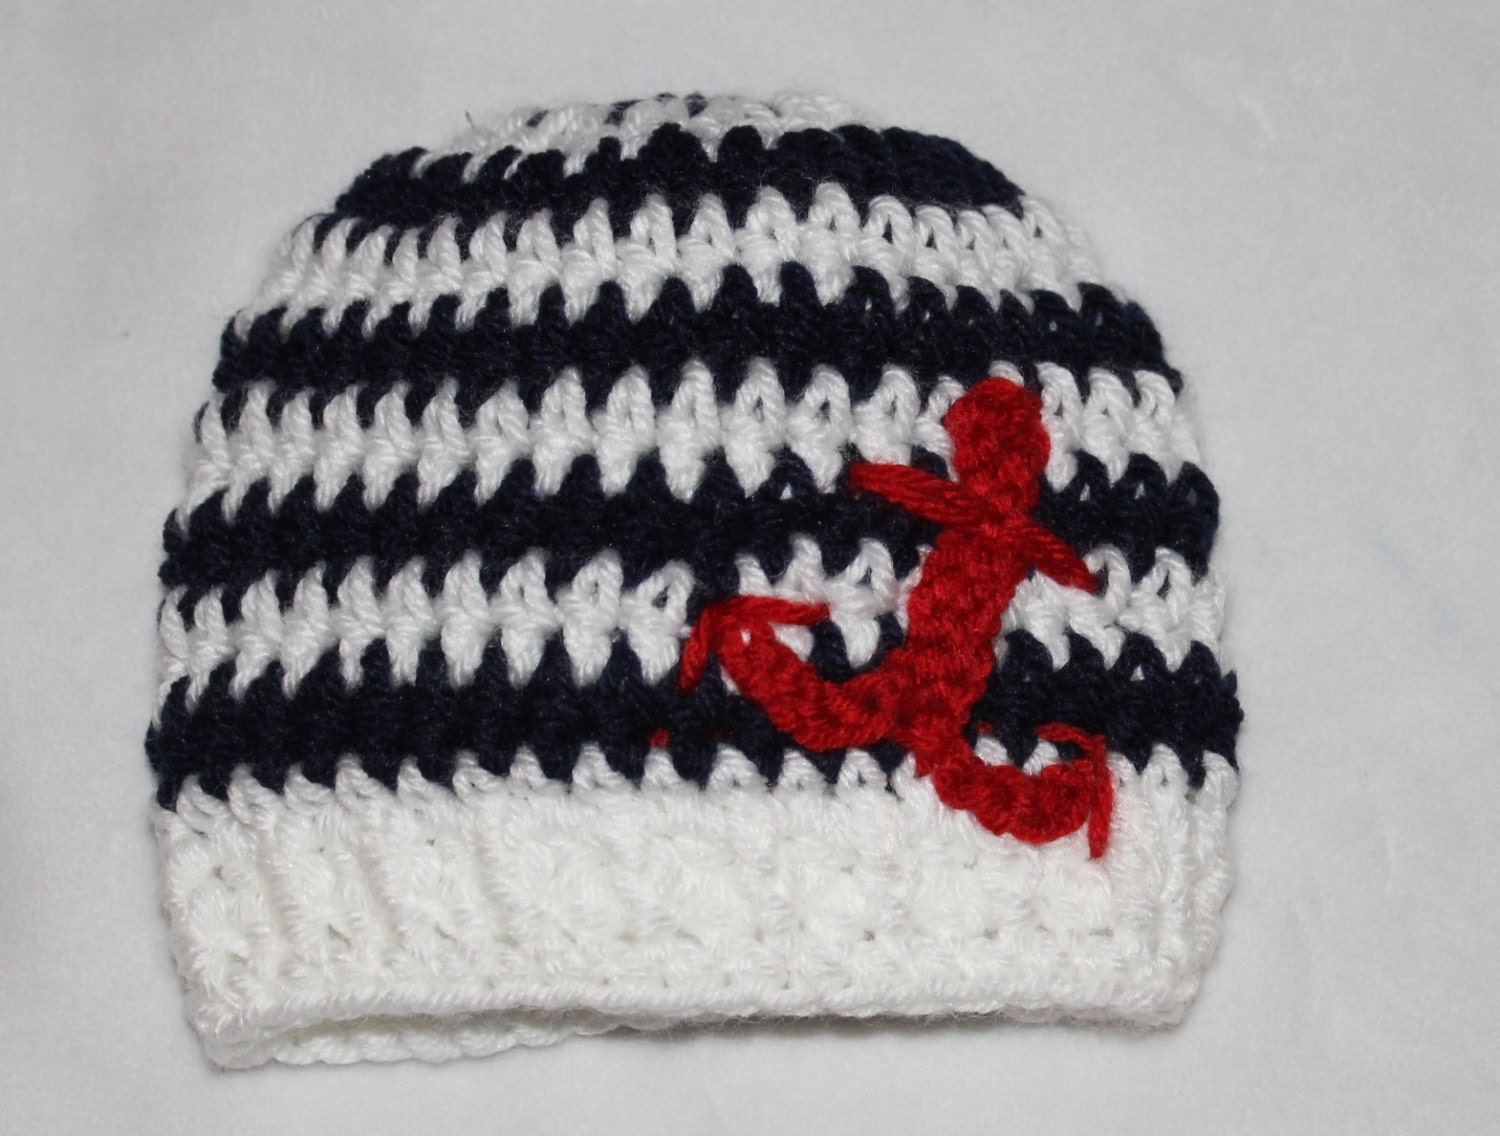 Crochet Beanie Pattern Striped : Navy and White Crochet Striped Beanie with Red Anchor. Newborn